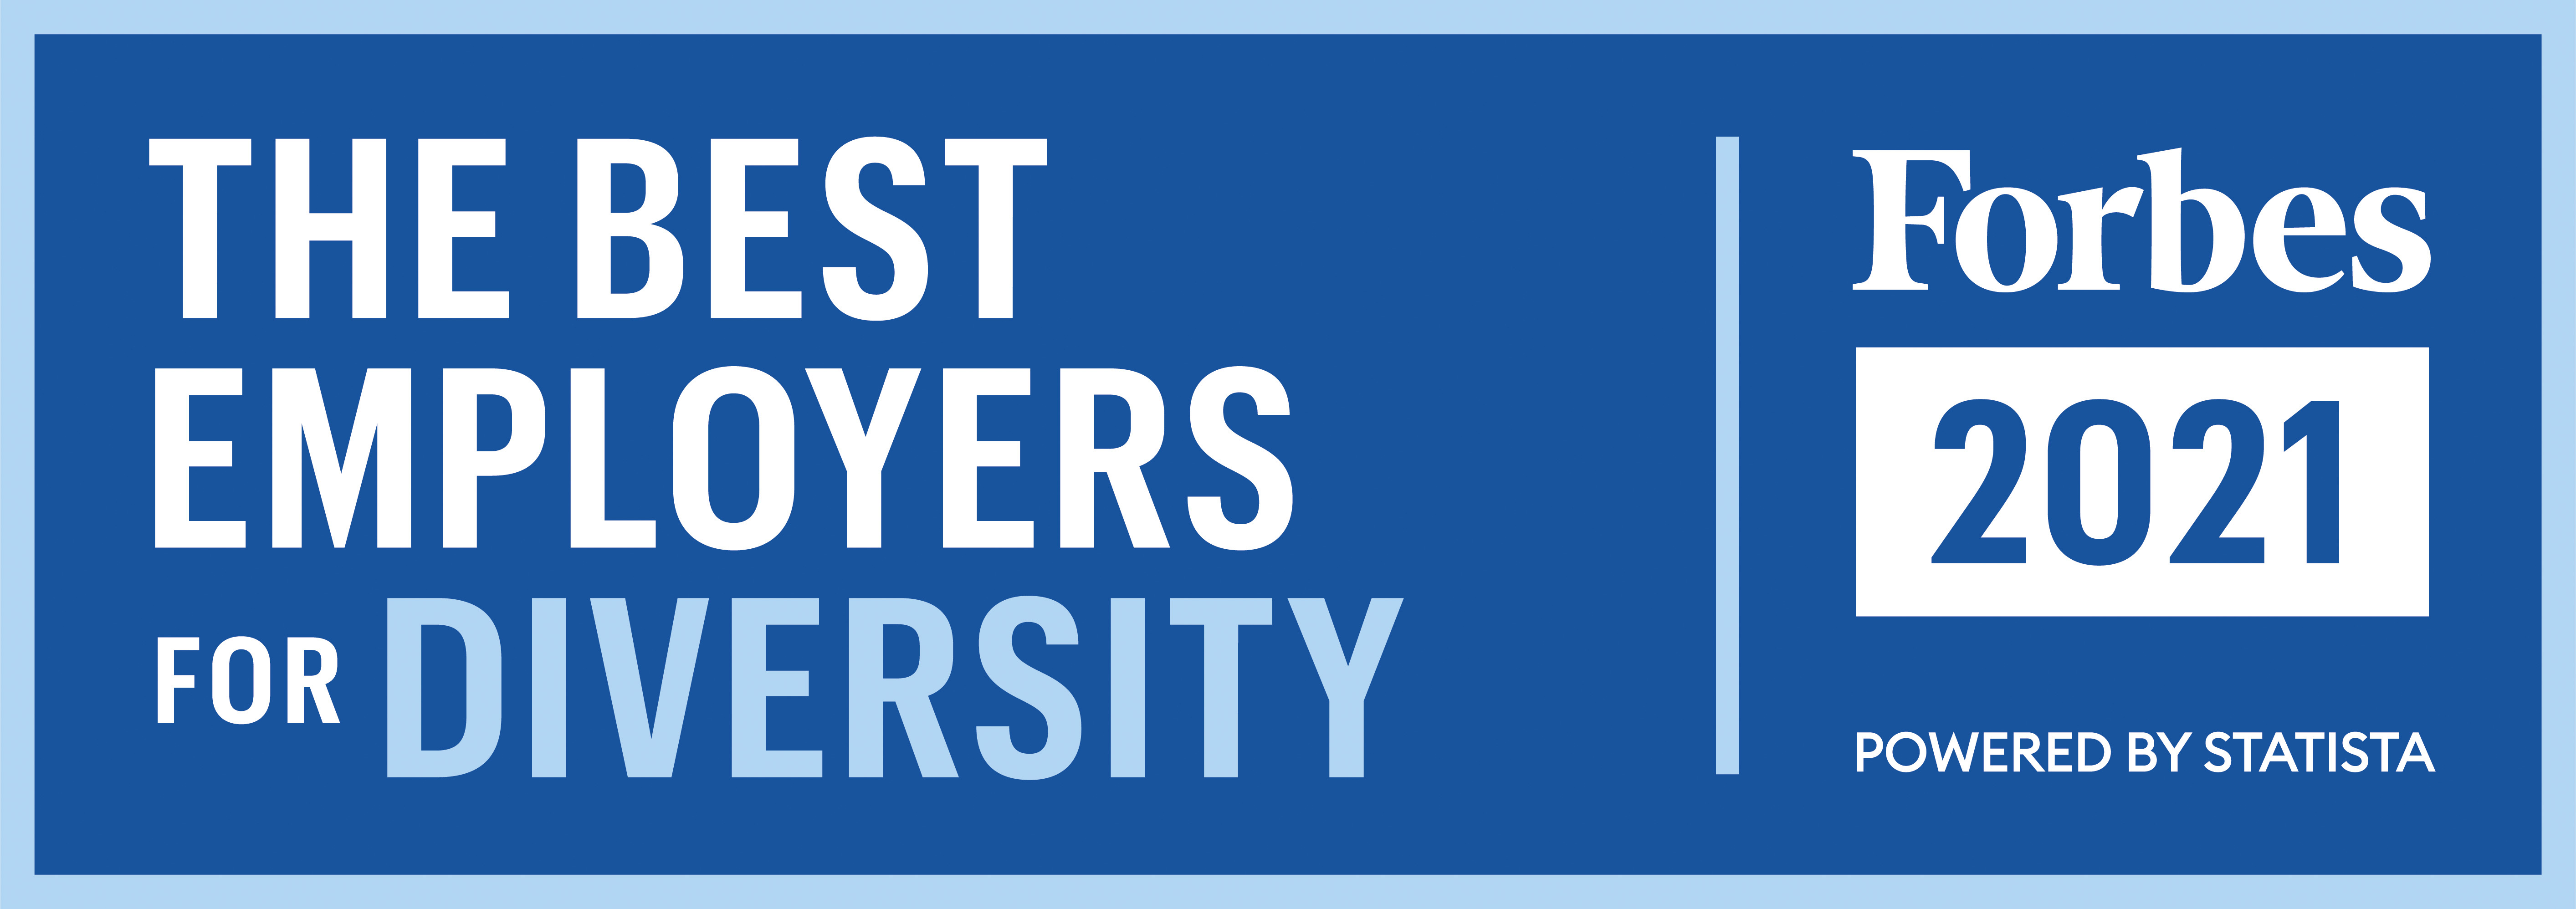 Forbes recognizes Ryder as one of the top companies in the United States dedicated to diversity, equality, and inclusion as part of the fourth annual list of America's Best Employers For Diversity in 2021. (Photo: Business Wire)